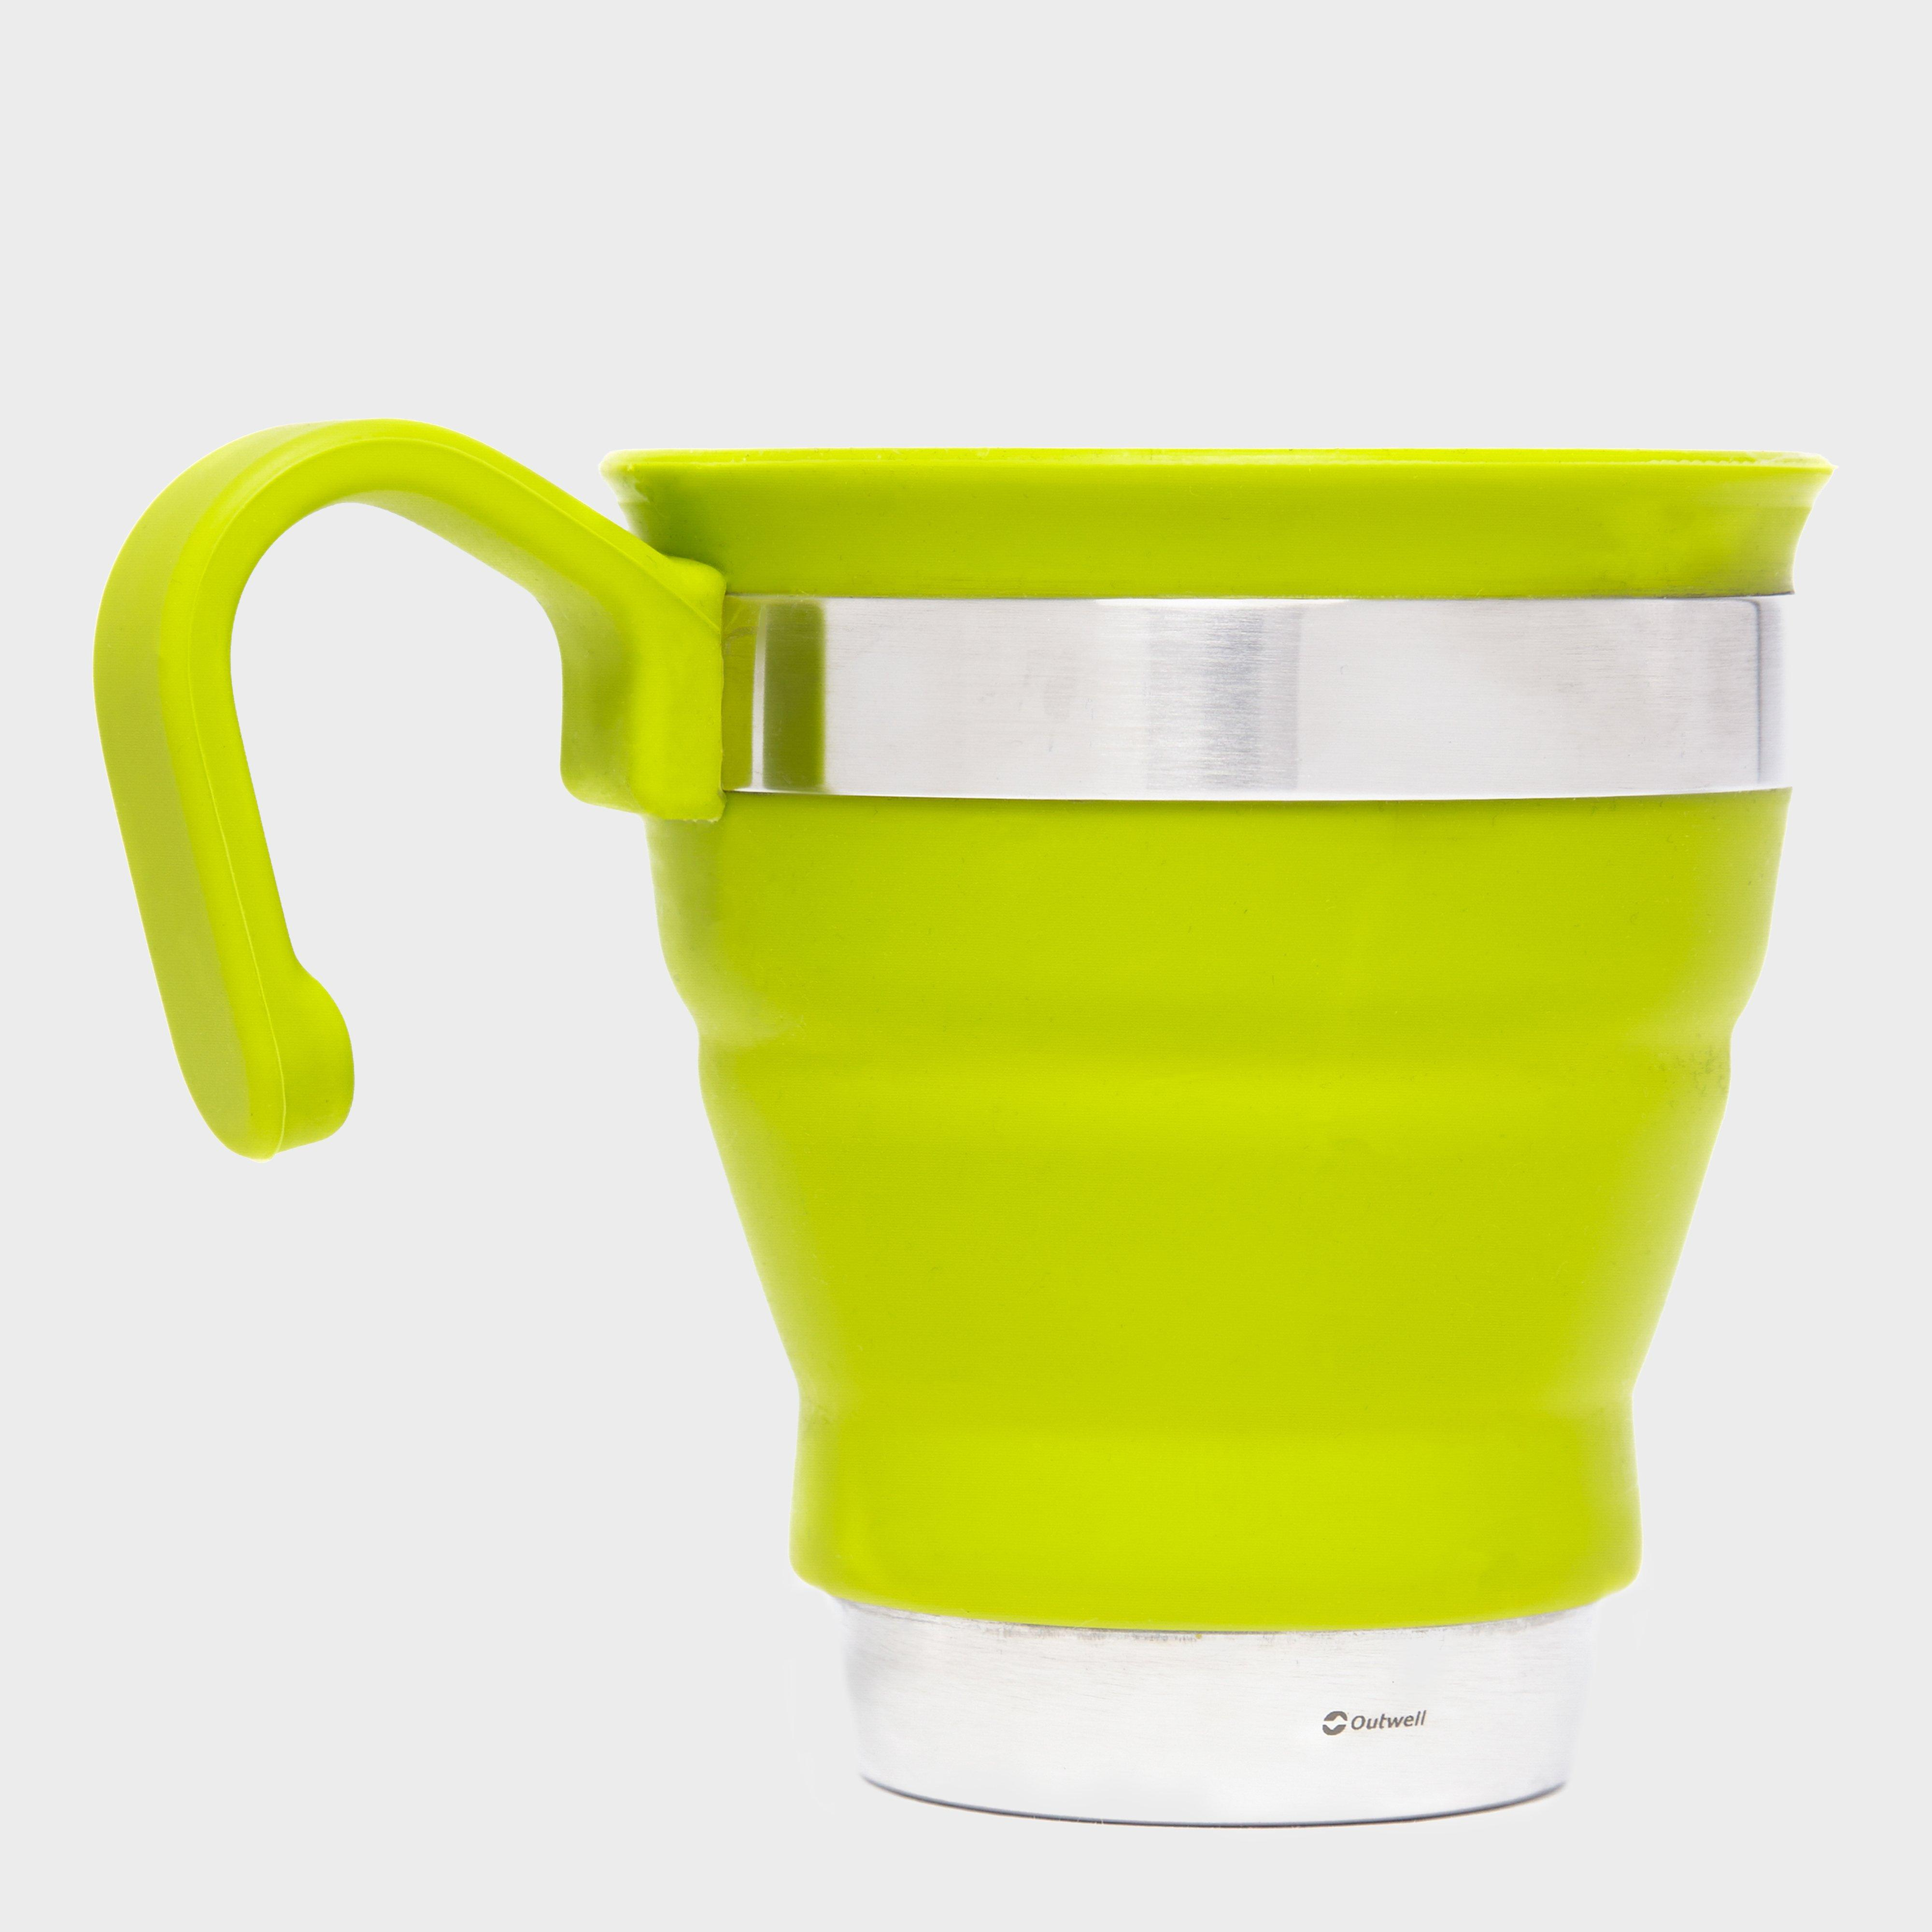 Outwell Outwell Collaps Mug - Green, Green